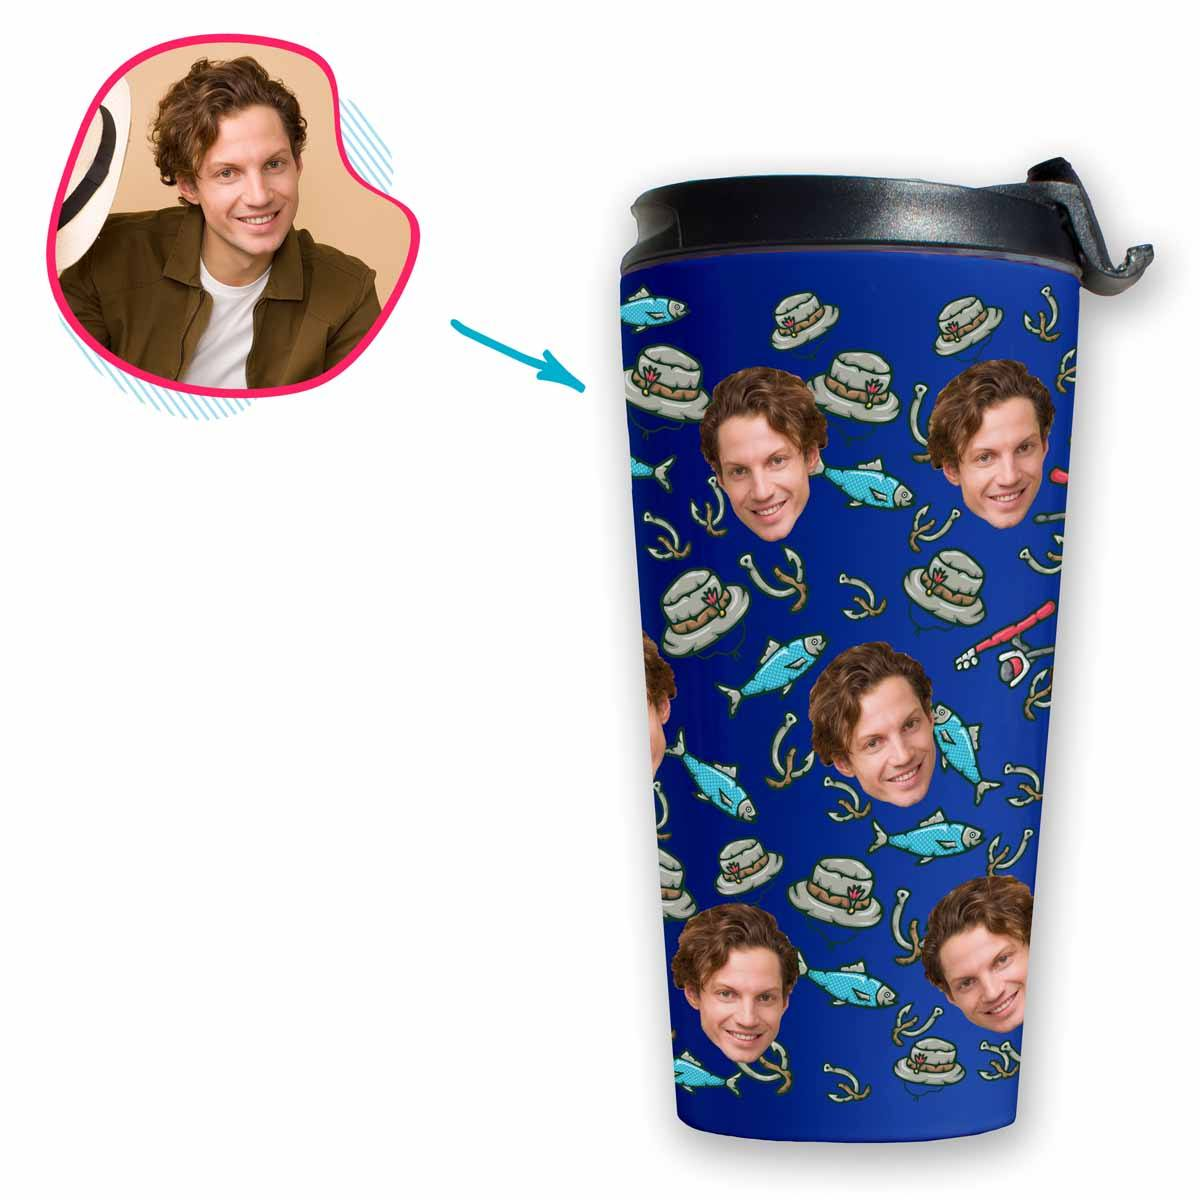 Darkblue Fishing personalized travel mug with photo of face printed on it